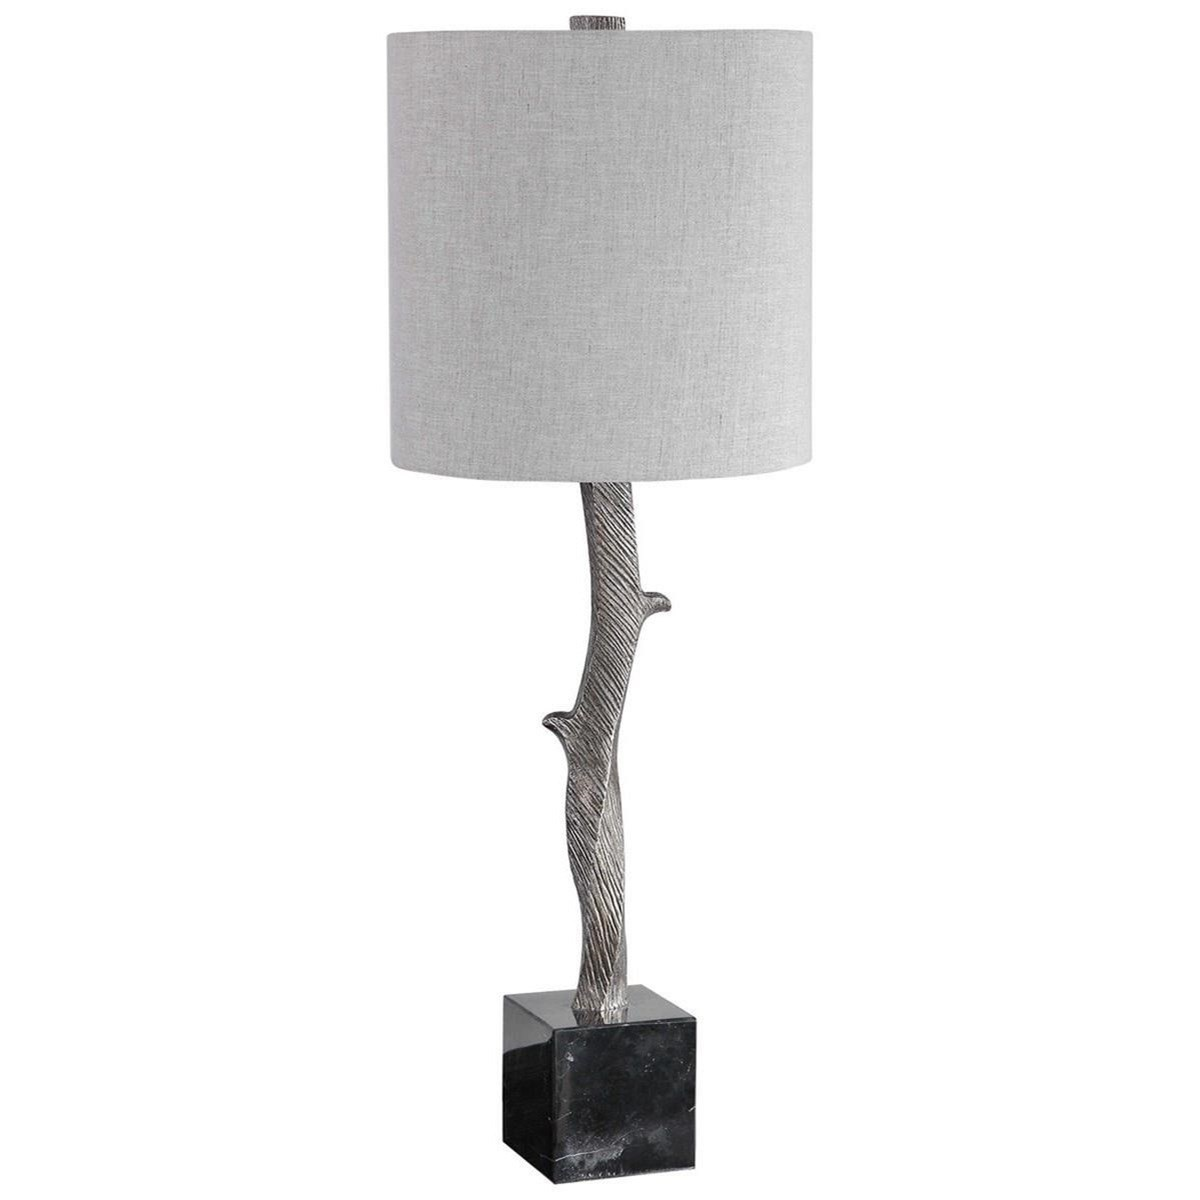 Accent Lamps Iver Branch Accent Lamp by Uttermost at Dunk & Bright Furniture